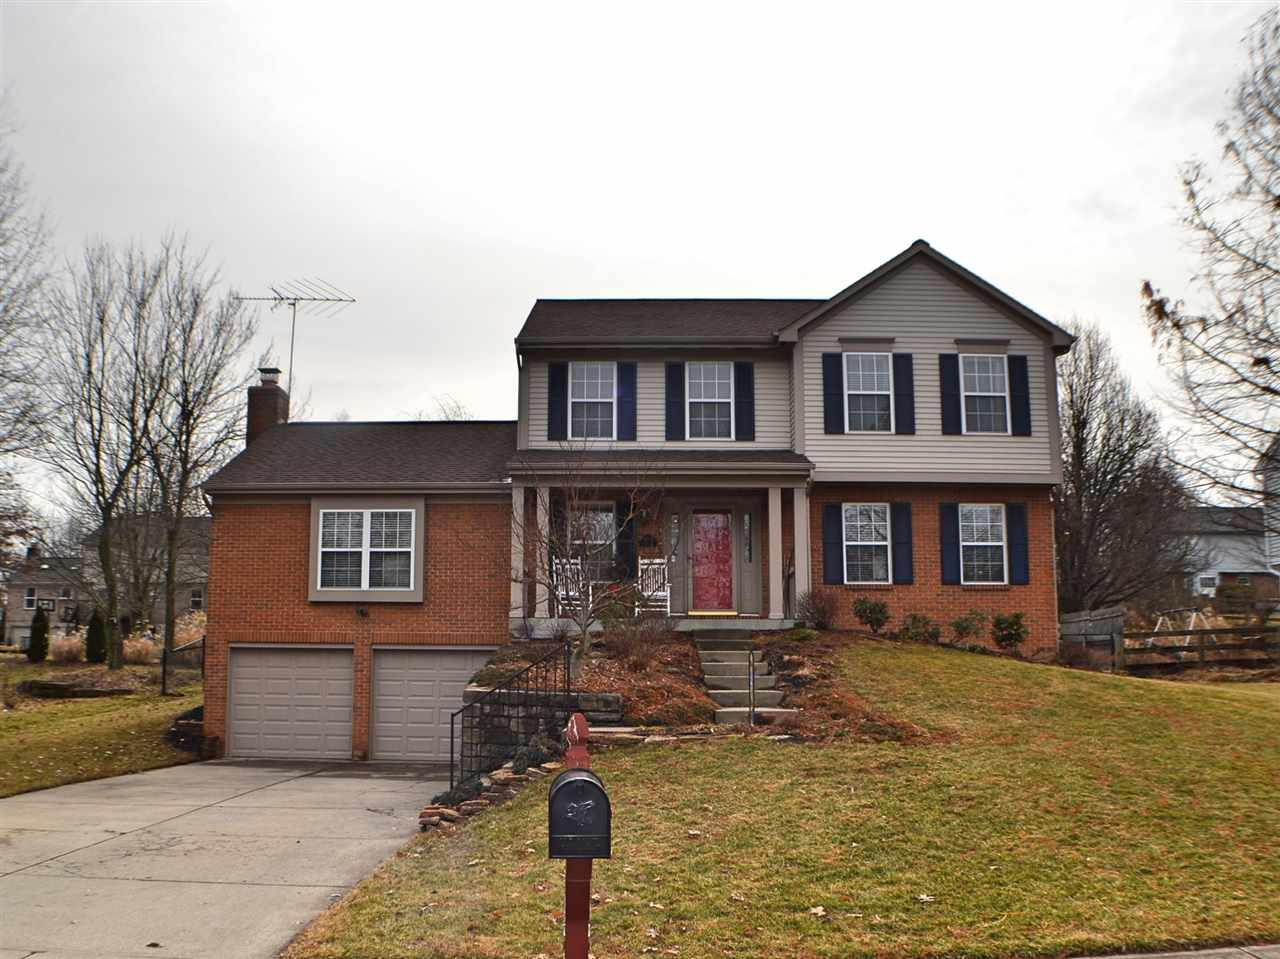 Photo 1 for 4007 Princeton Dr Burlington, KY 41005